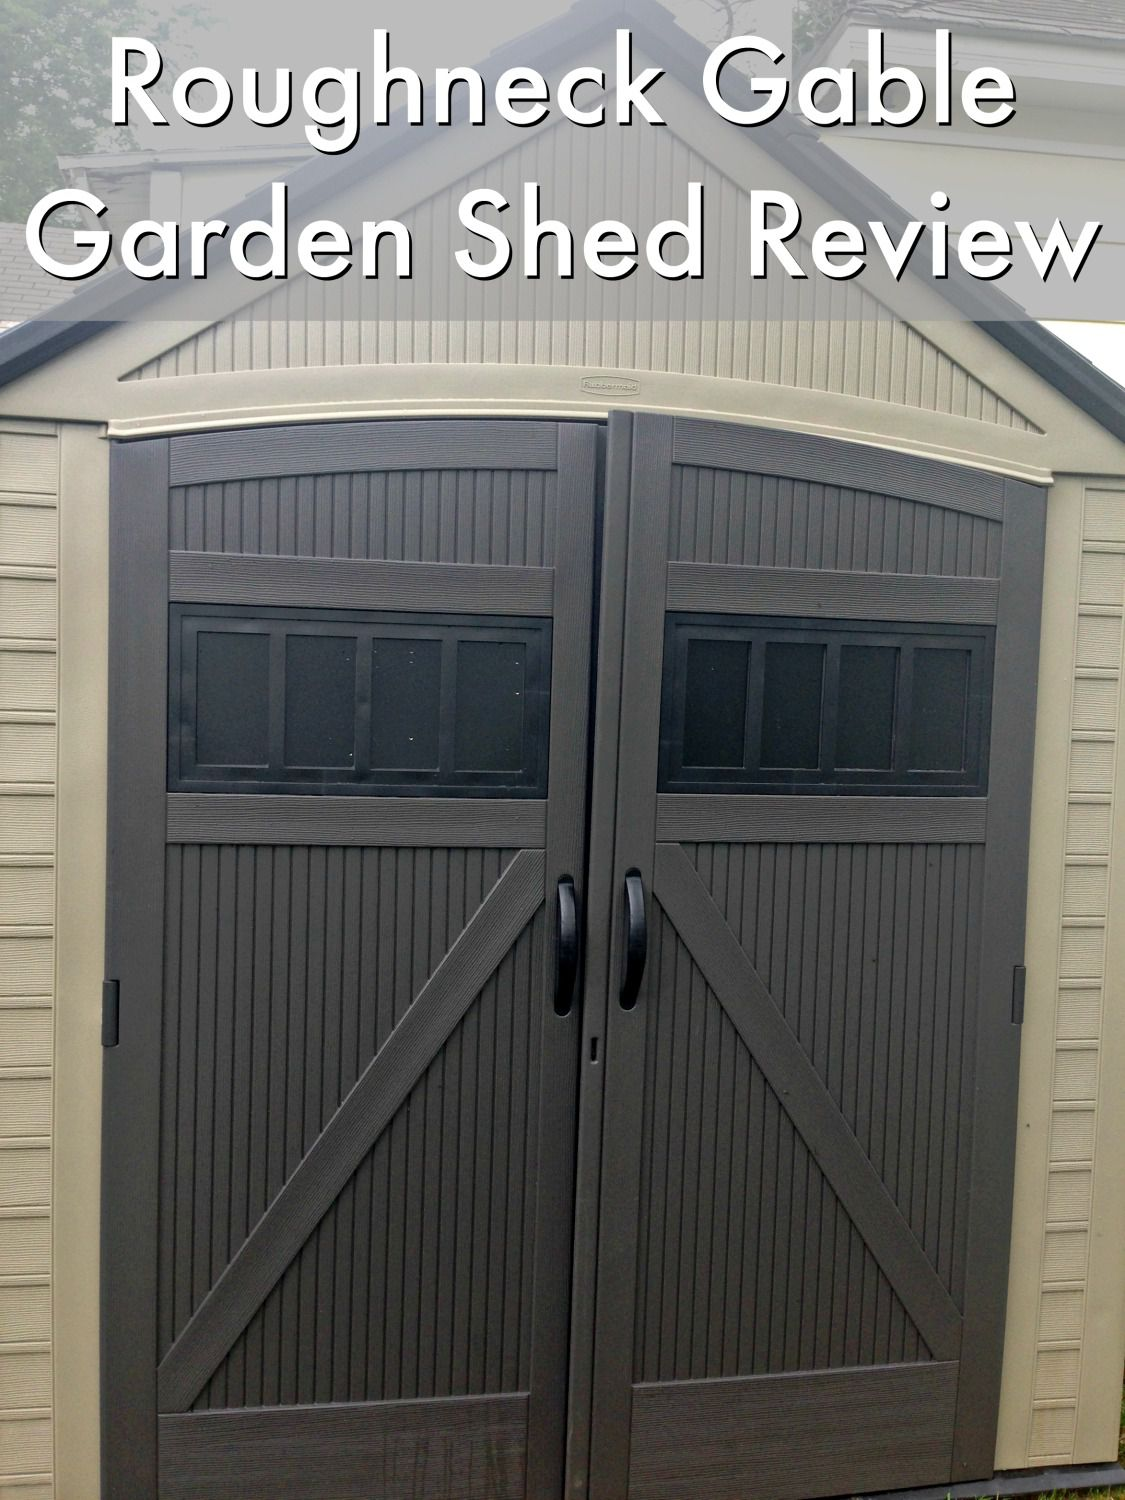 rubbermaid shed review take your gardening up a notch